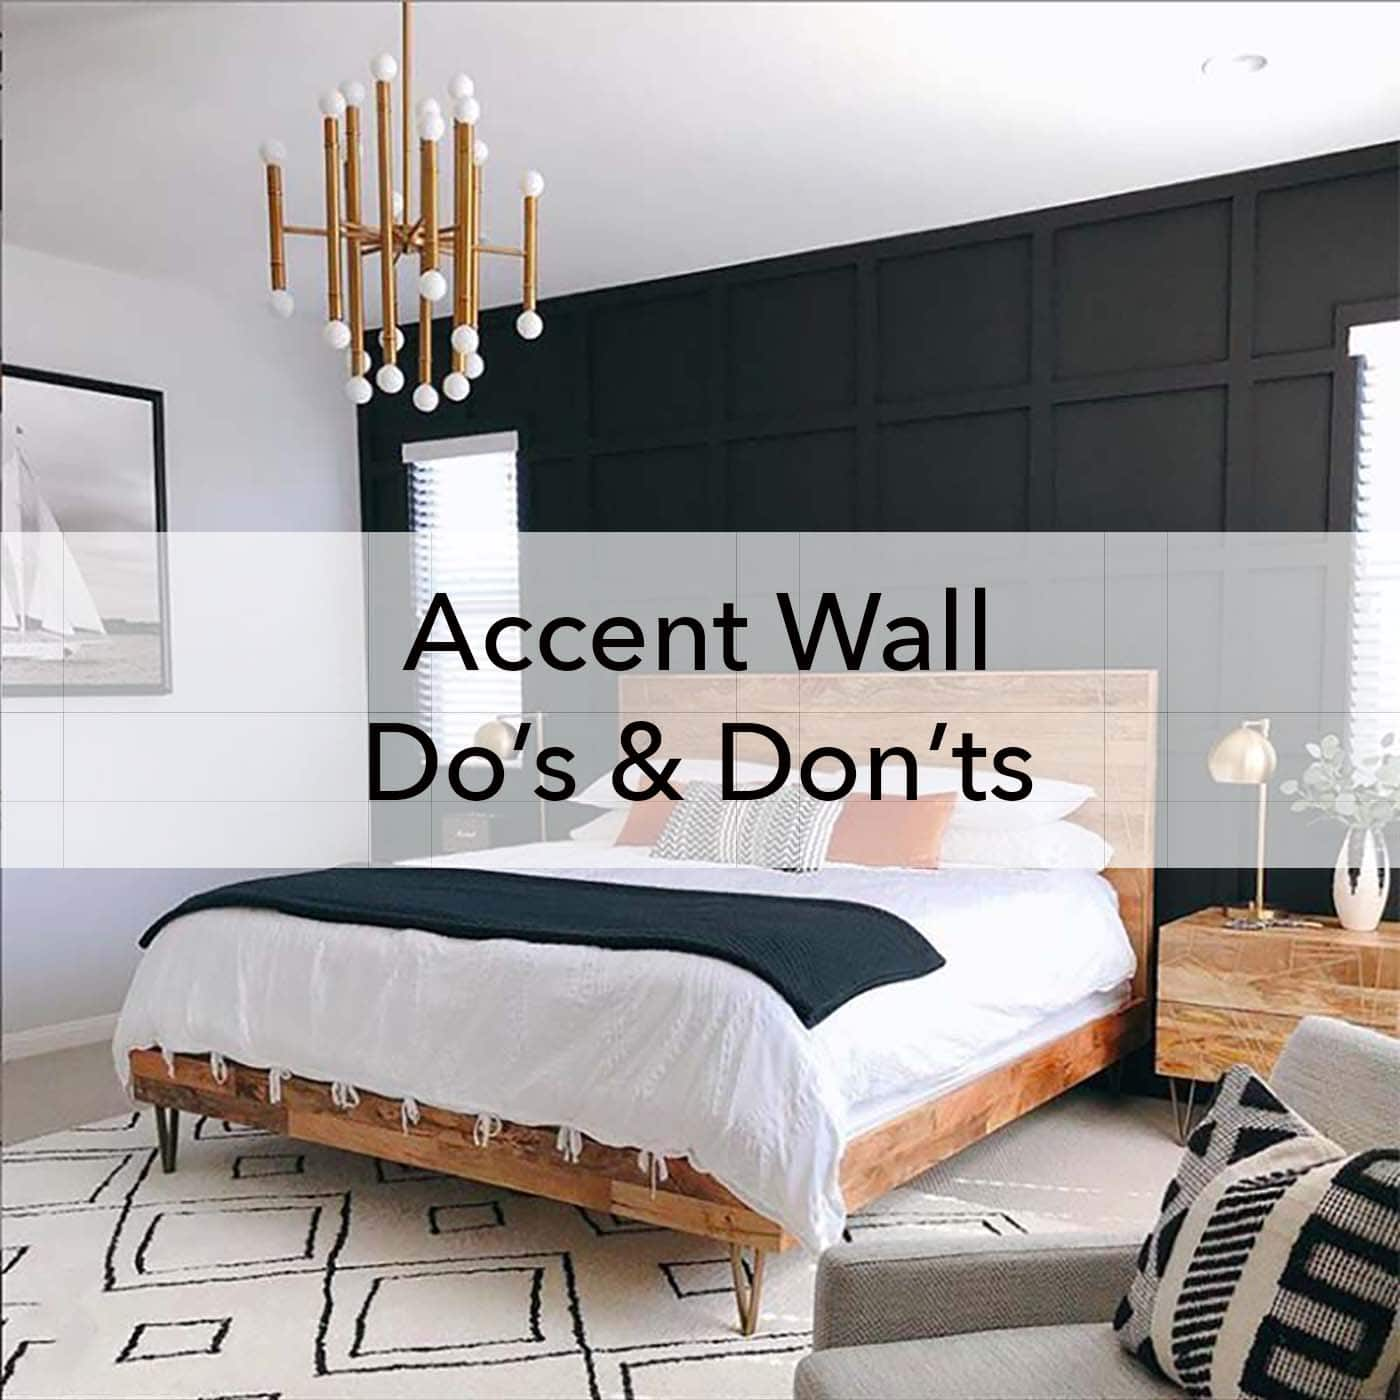 Accent wall do's and don'ts, design advice on how to paint, Paper Moon Painting blog